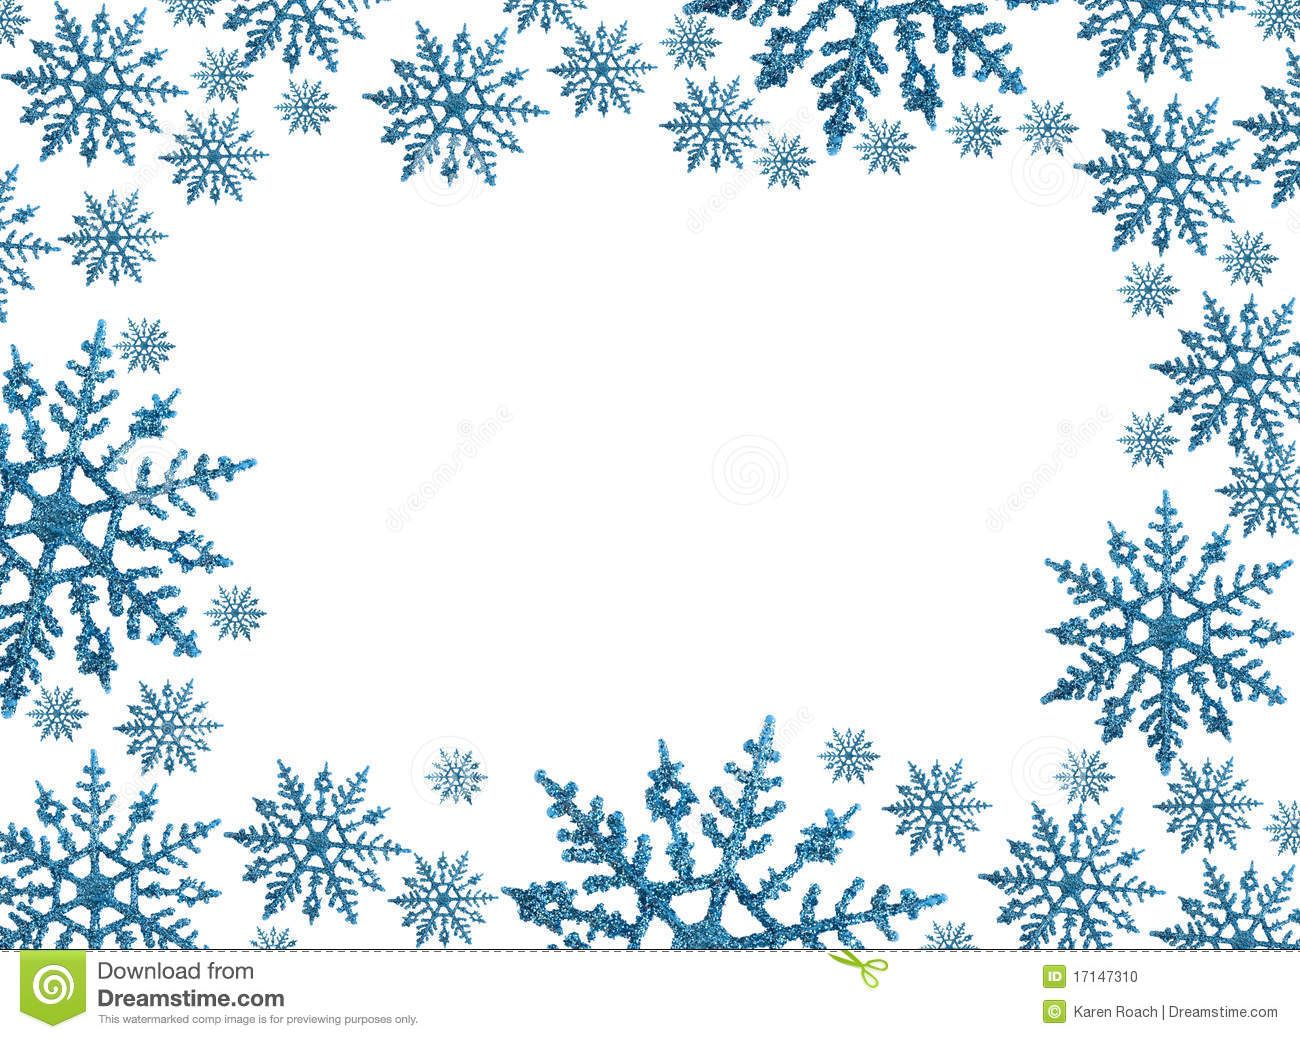 Clipart winter borders freeuse library Snowflake Circle Border Clip Art | Snowflake border with white ... freeuse library